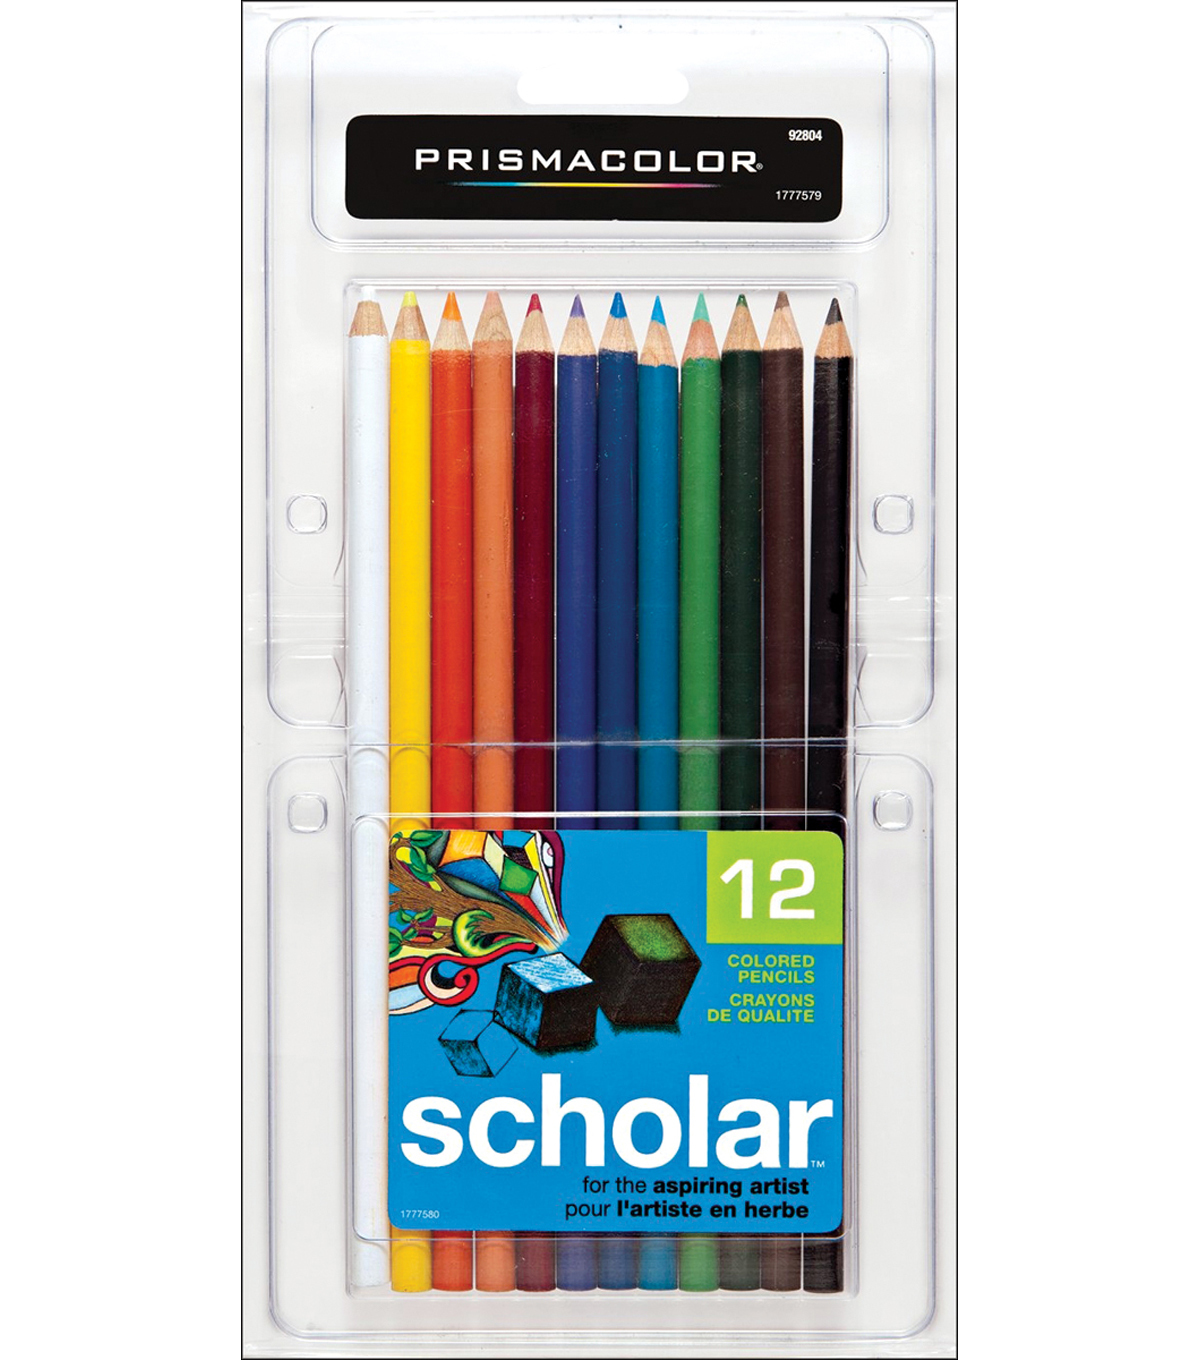 Prismacolor Scholar Colored Pencil Set 12/Pk-